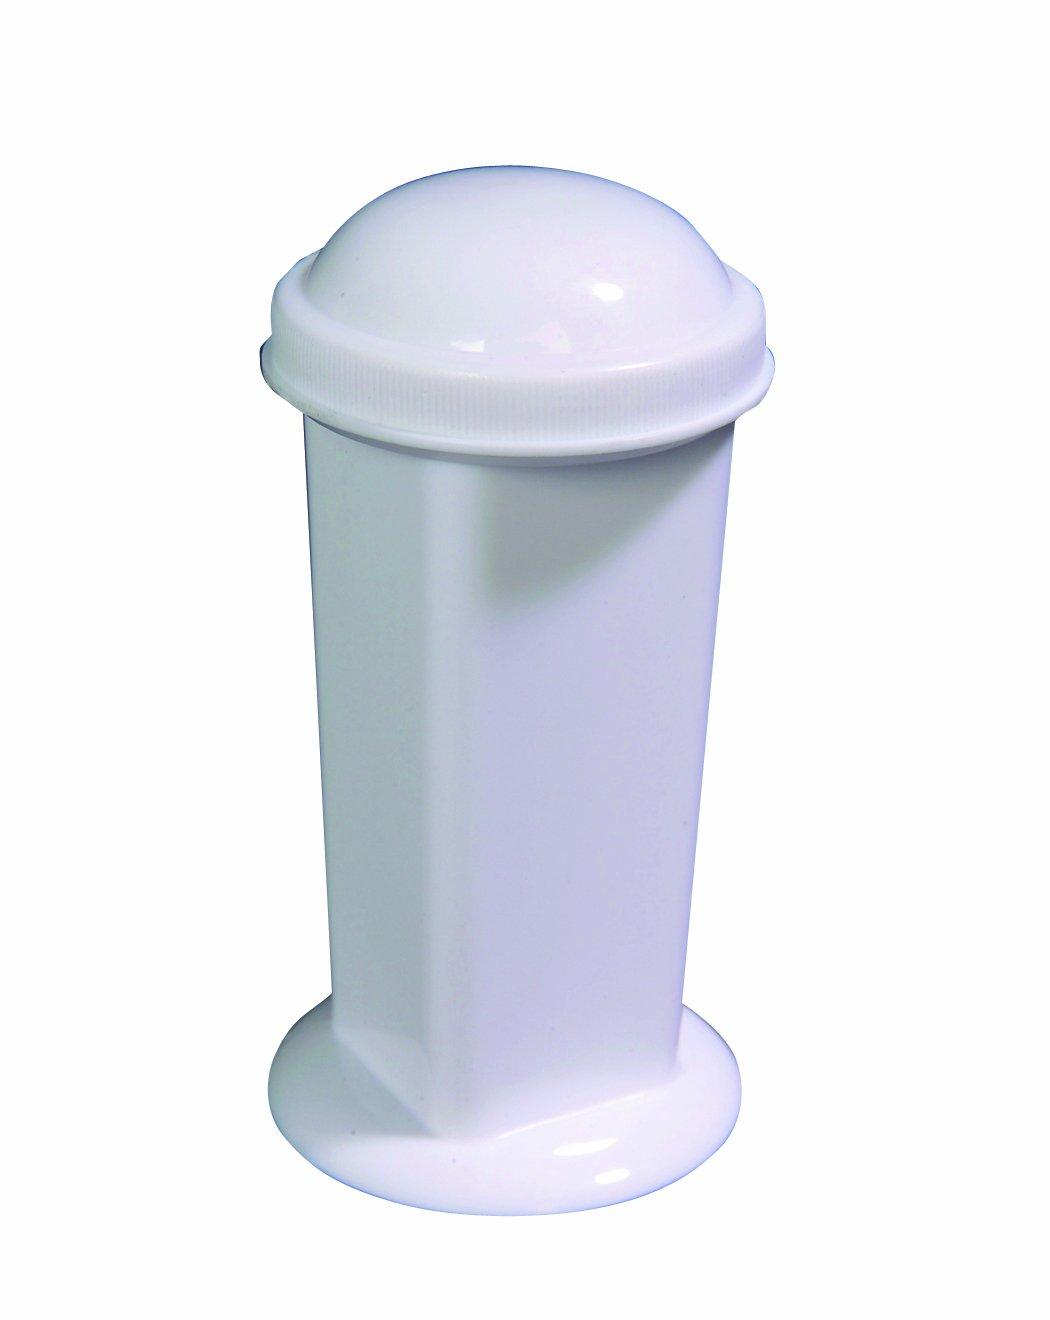 Thomas 62101 Polypropylene Max Popular products 86% OFF Staining Coplin and S Domed Jar with